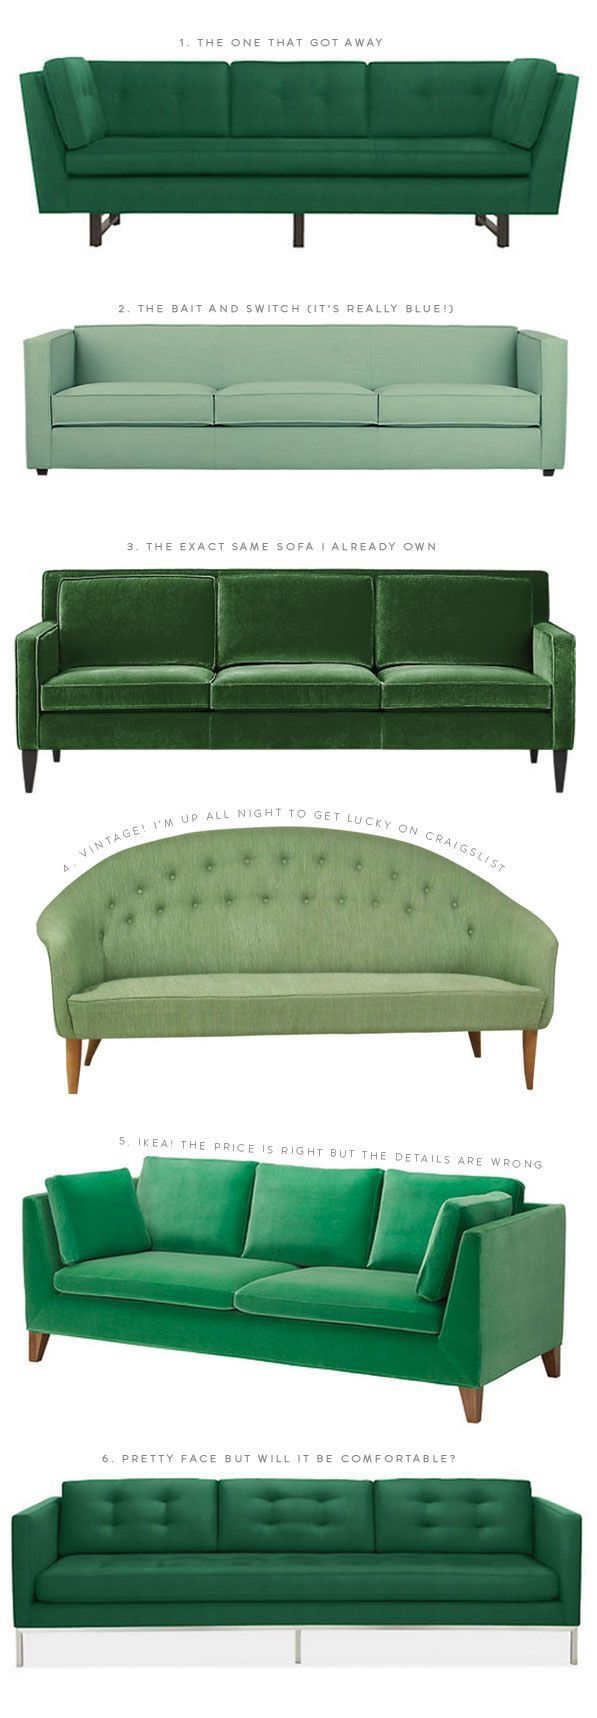 Emerald green...  check it out! This color is bold and so in right now! 5.5.17